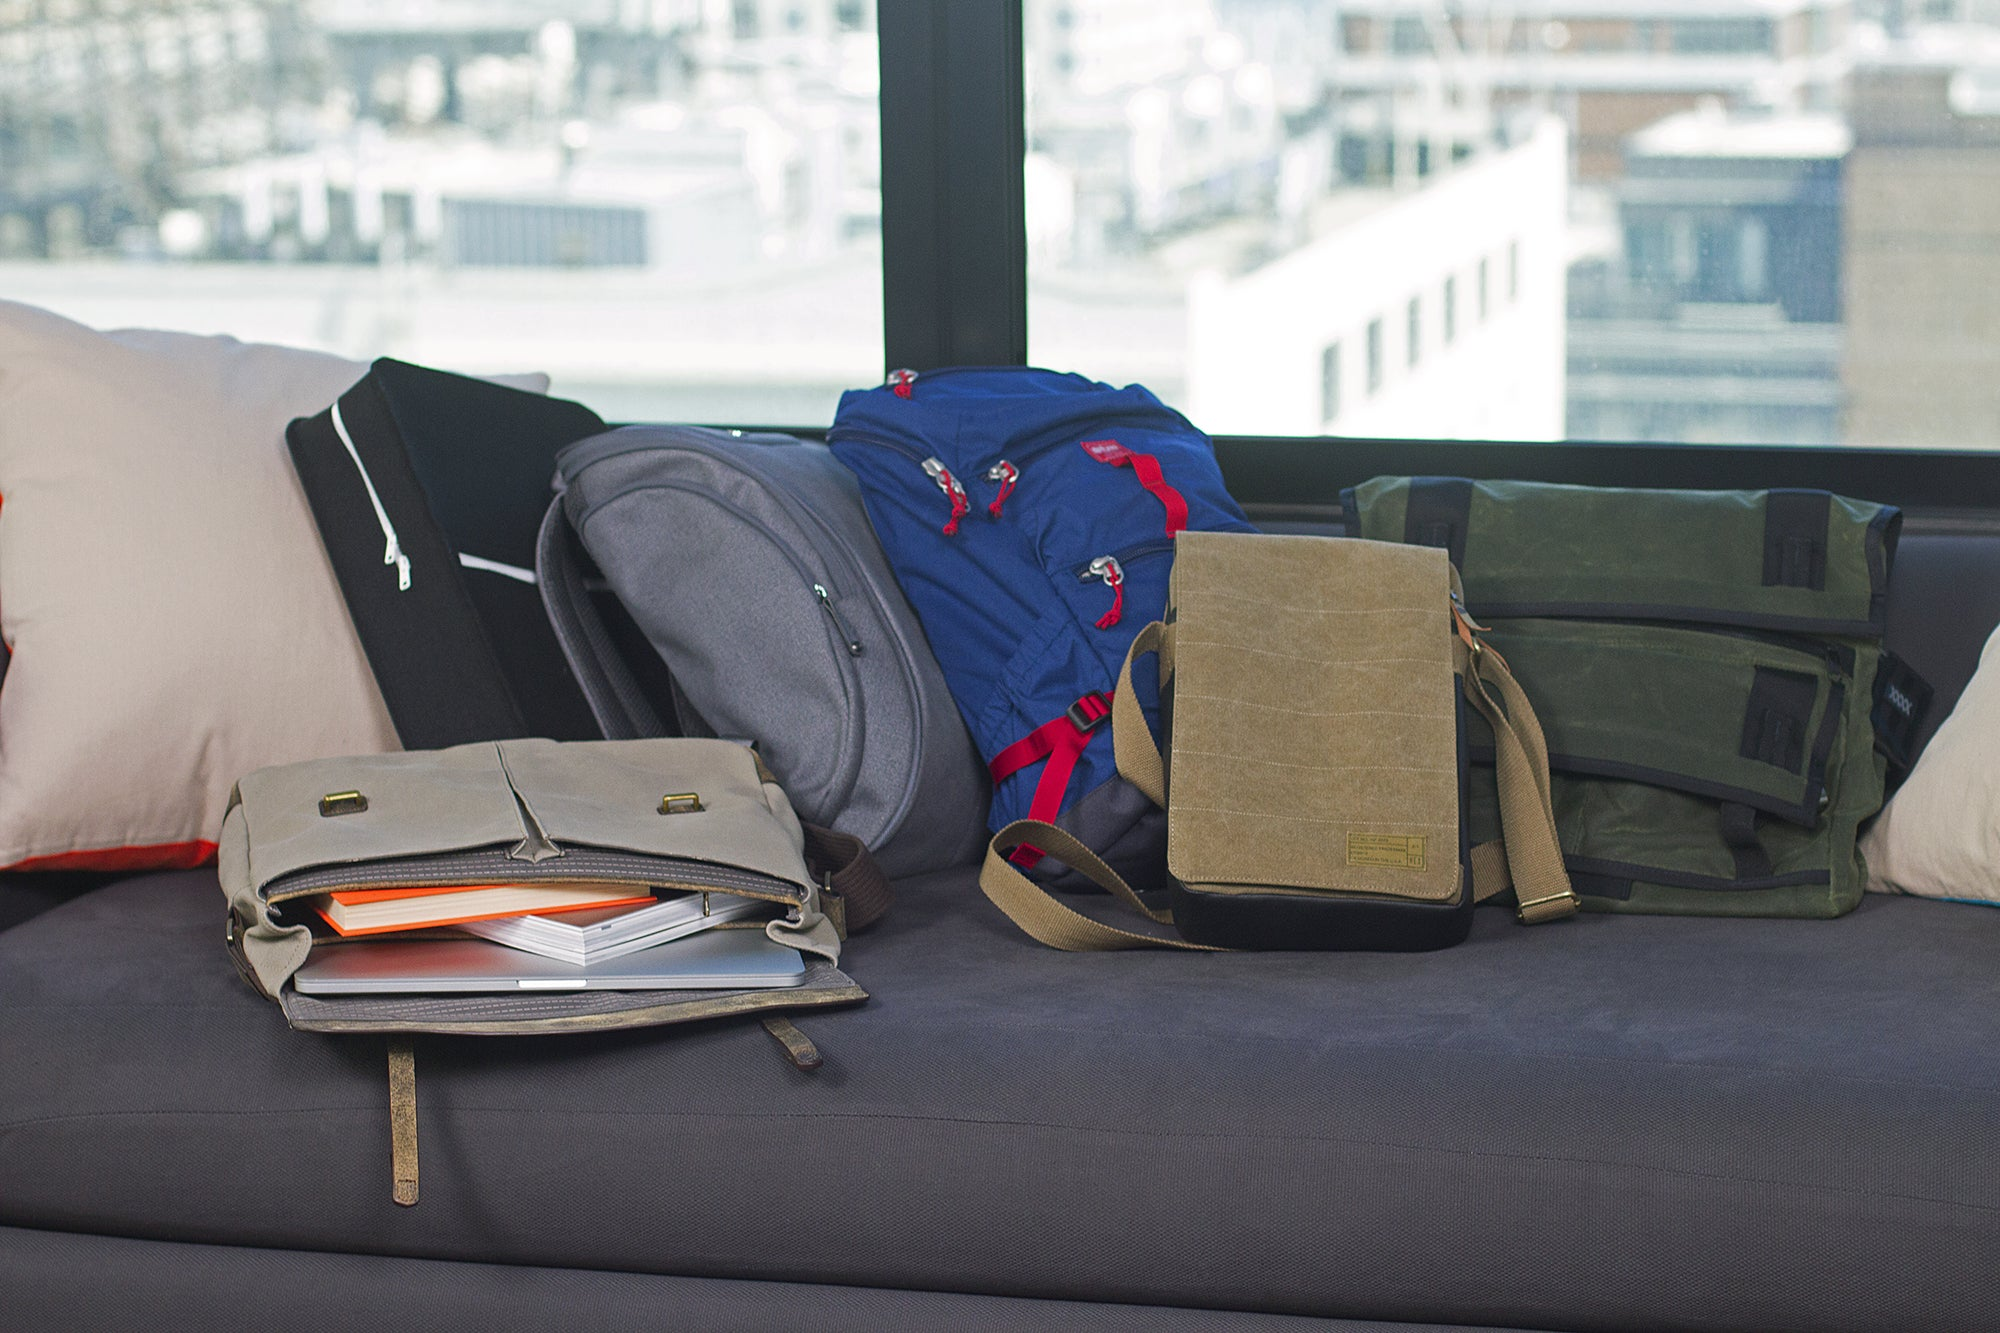 fb6db28bd Best laptop bags: Editor's choice for commuting, traveling, and more